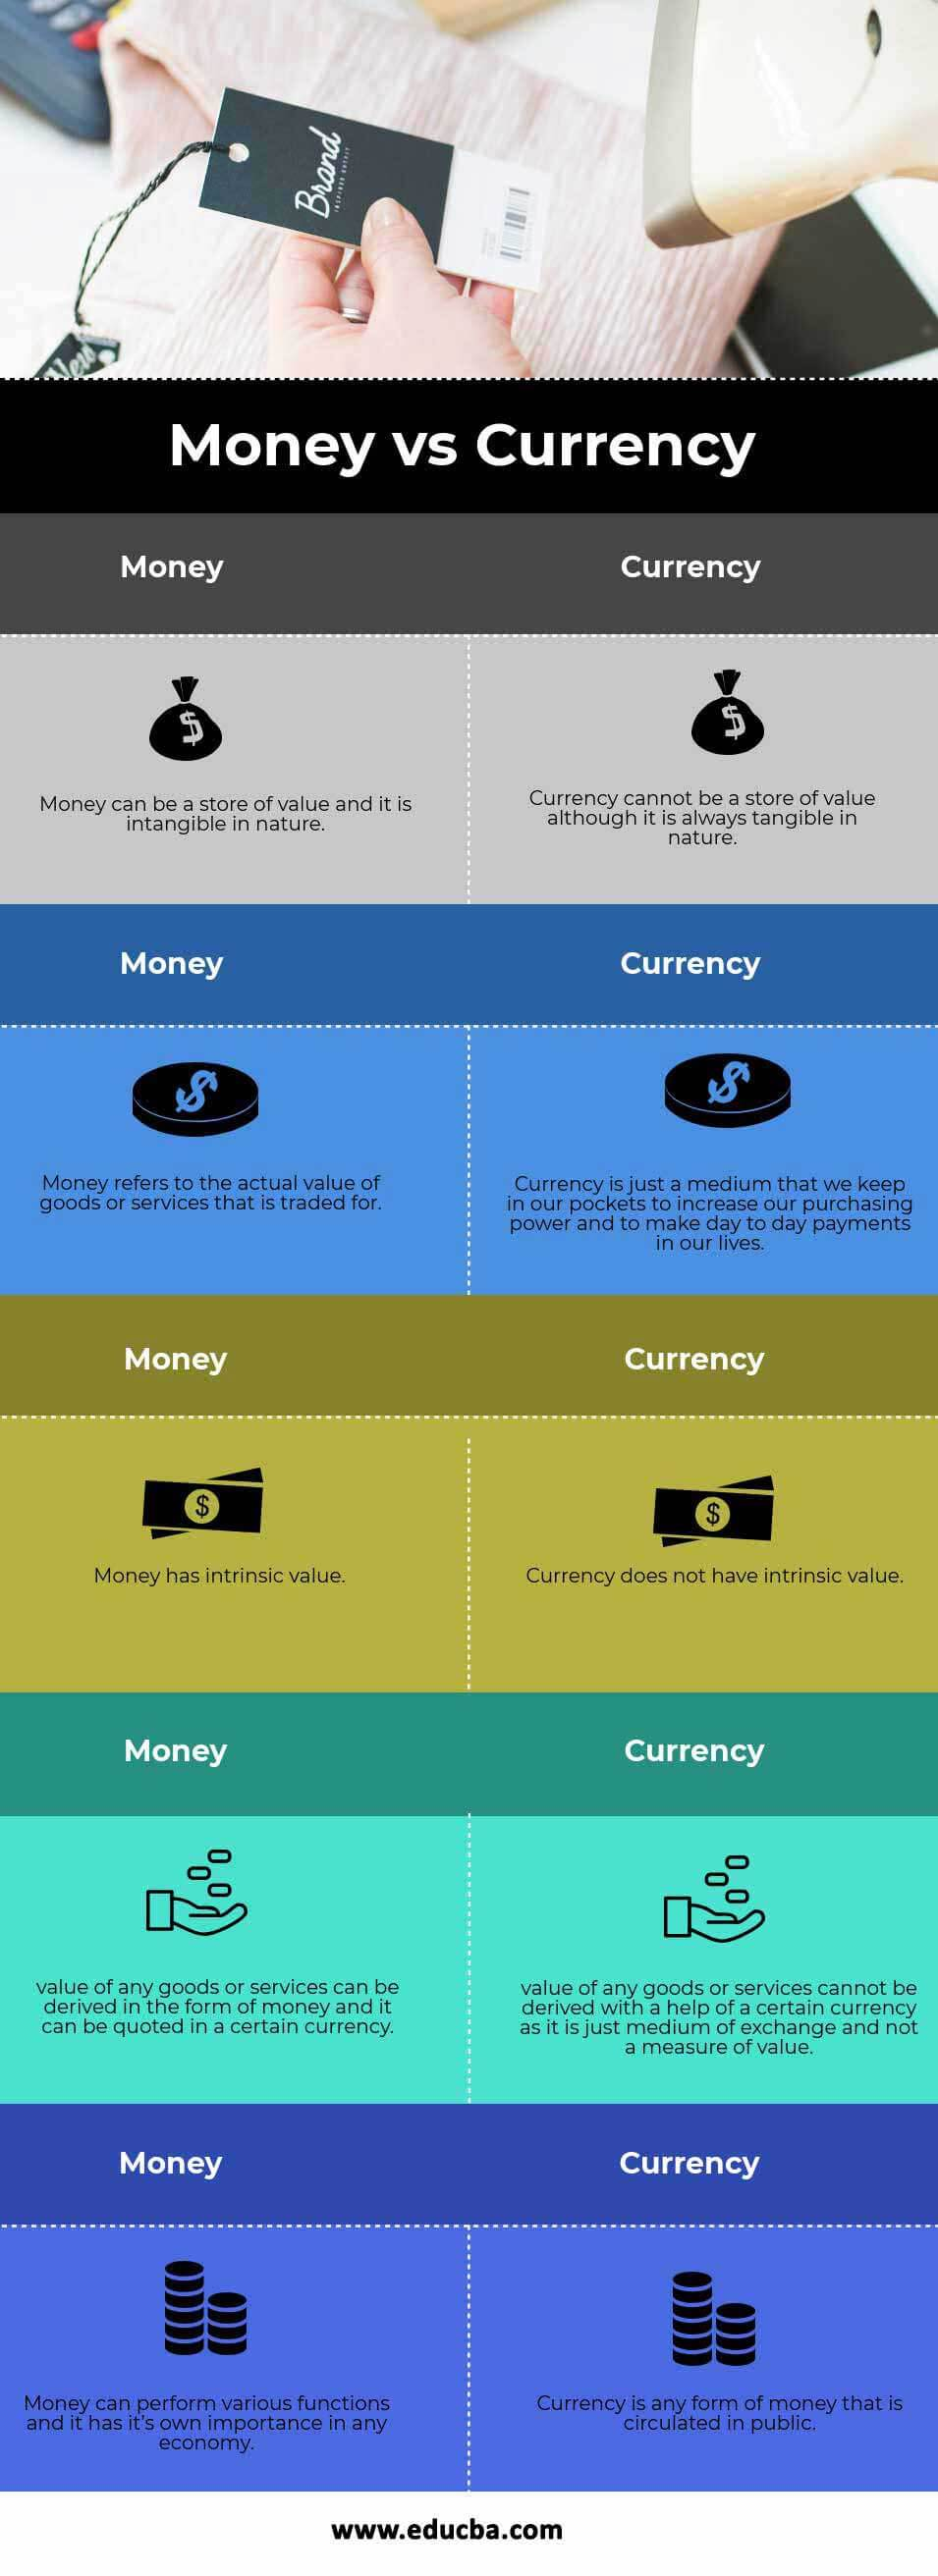 Money vs Currency info